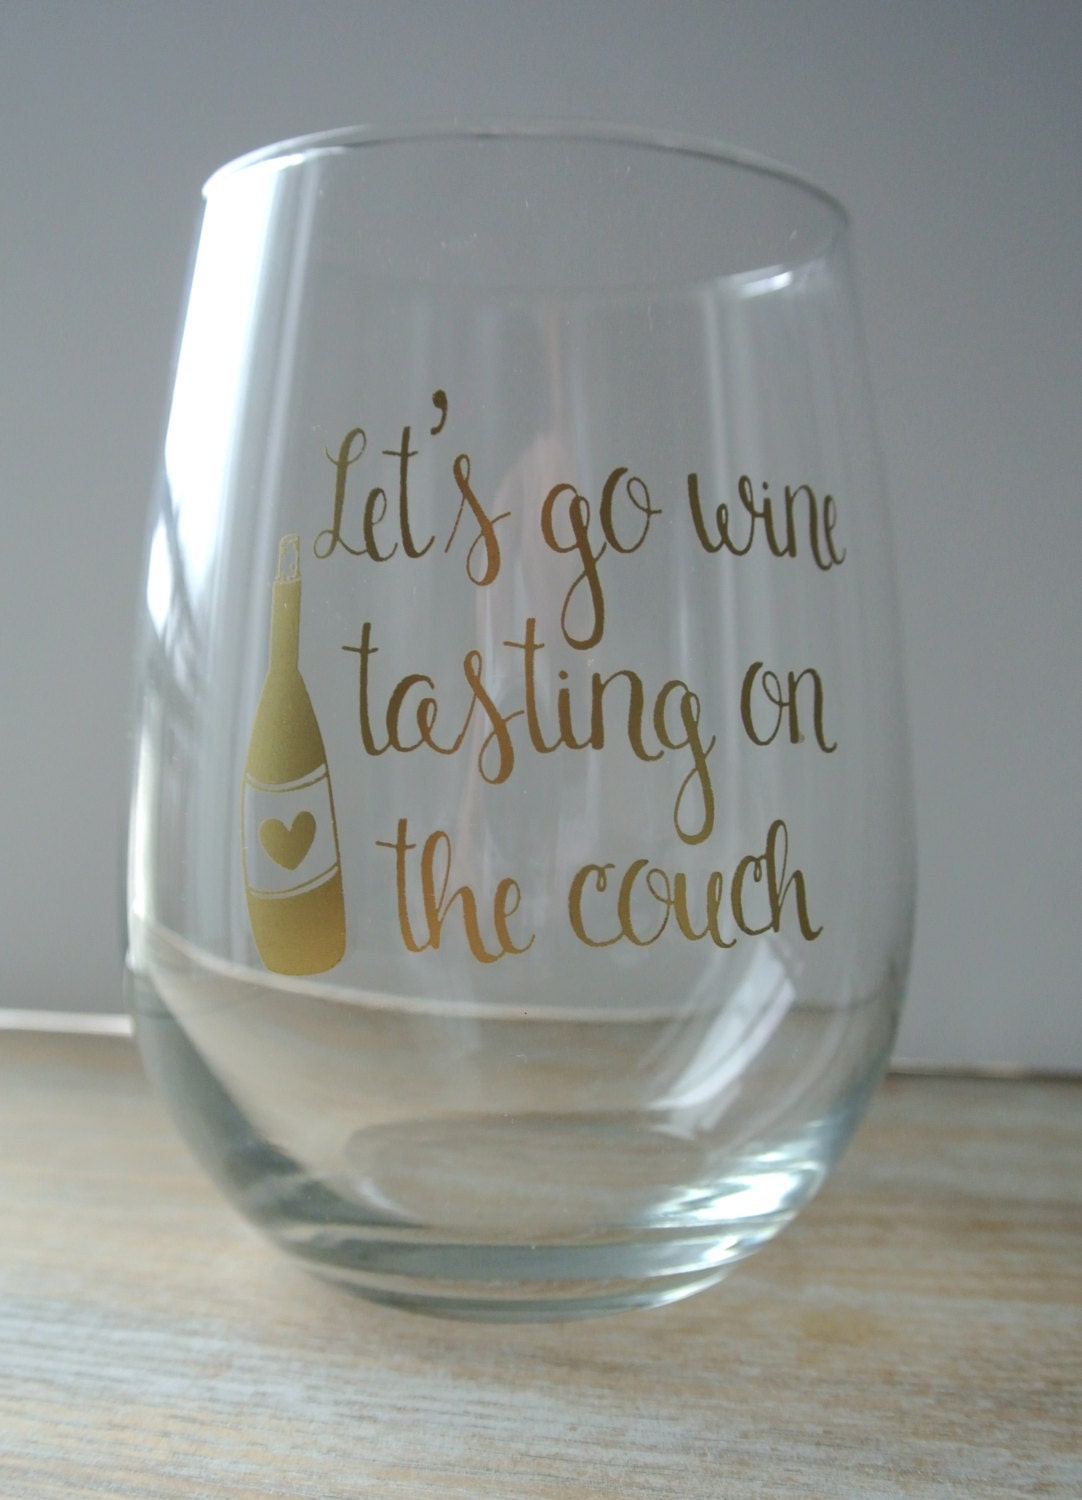 Let 39 S Go Wine Tasting On The Couch Stemless Wine Glass: wine glasses to go